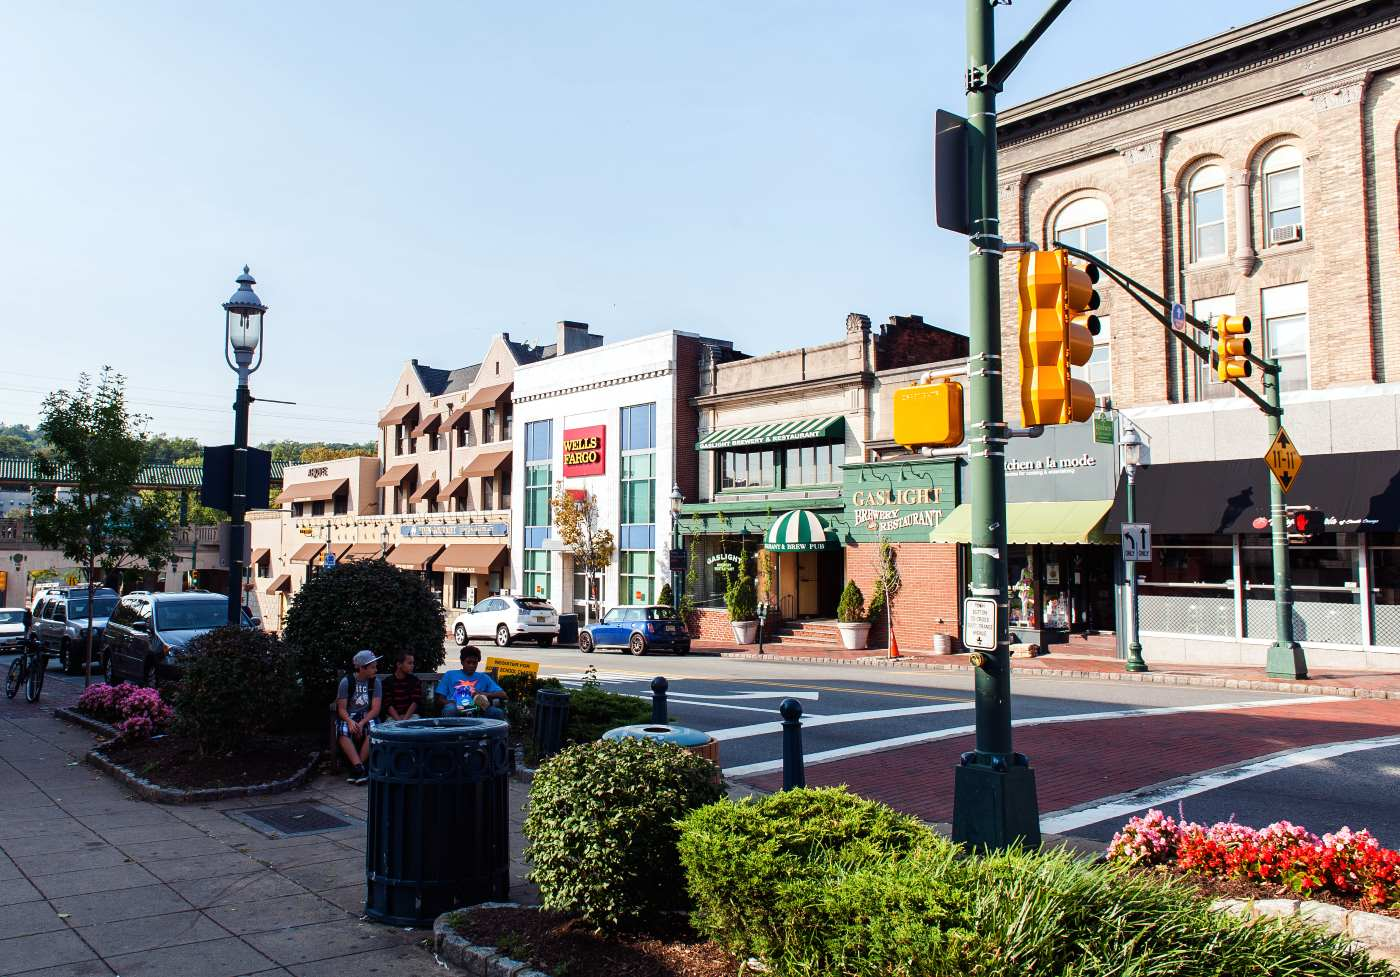 South Orange, Essex County Is A Premier New Jersey Urban Suburb, With  Historic Housing, A Vibrant Downtown And Home To Seton Hall University.